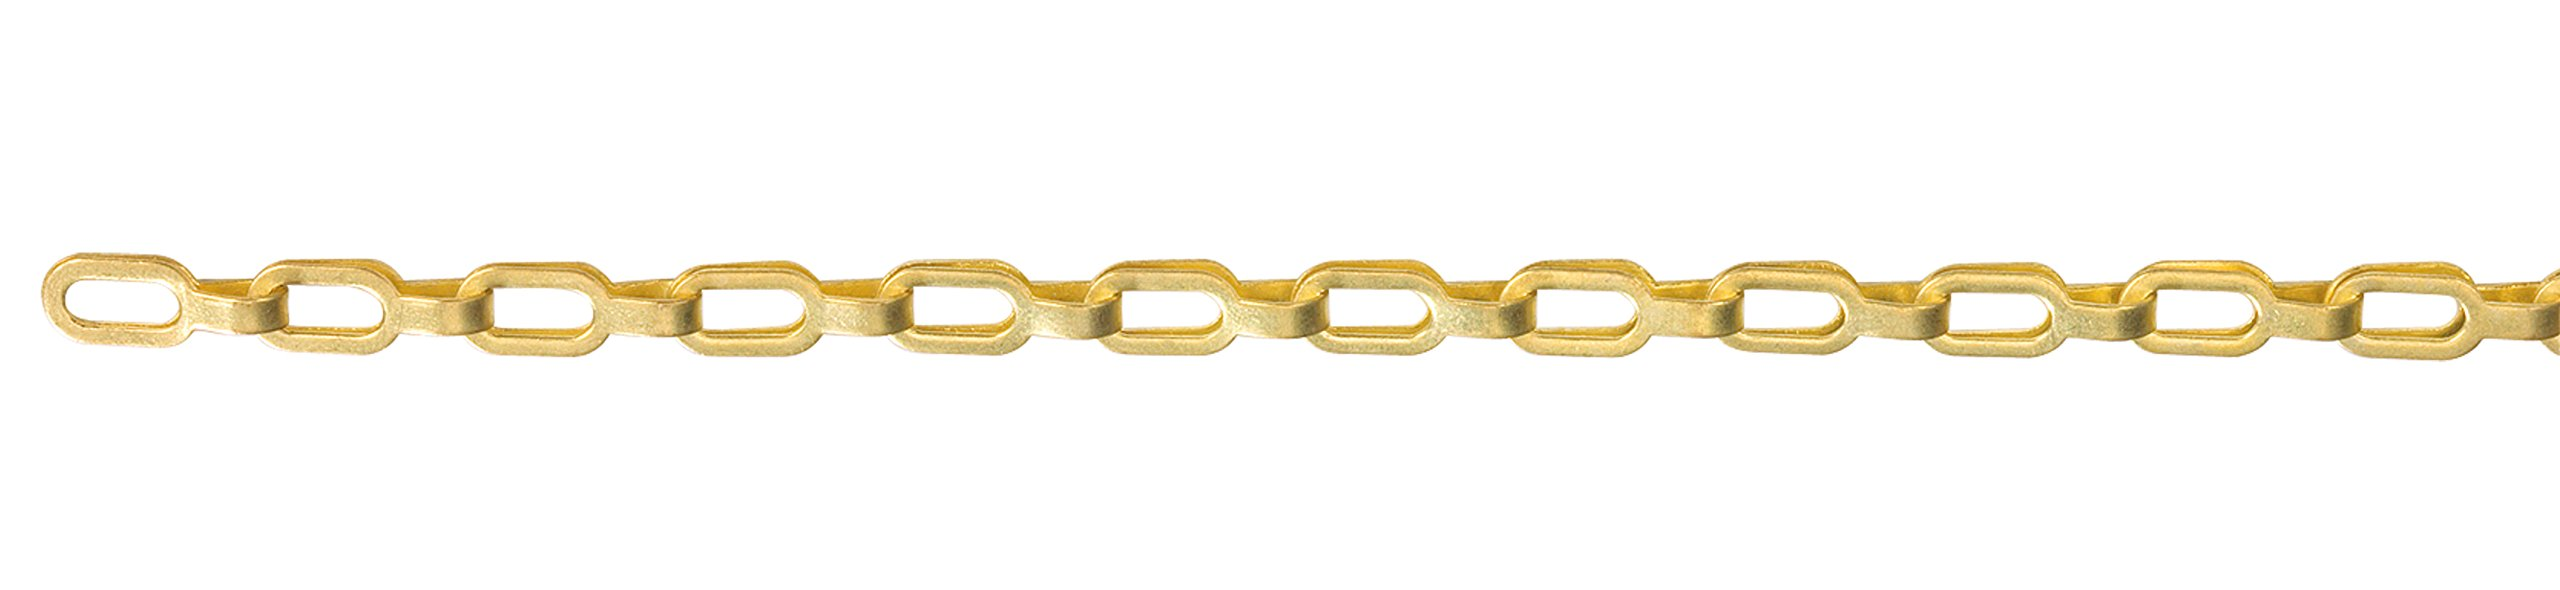 KingChain 502895 Solid Brass SAFETY Plumber Chain